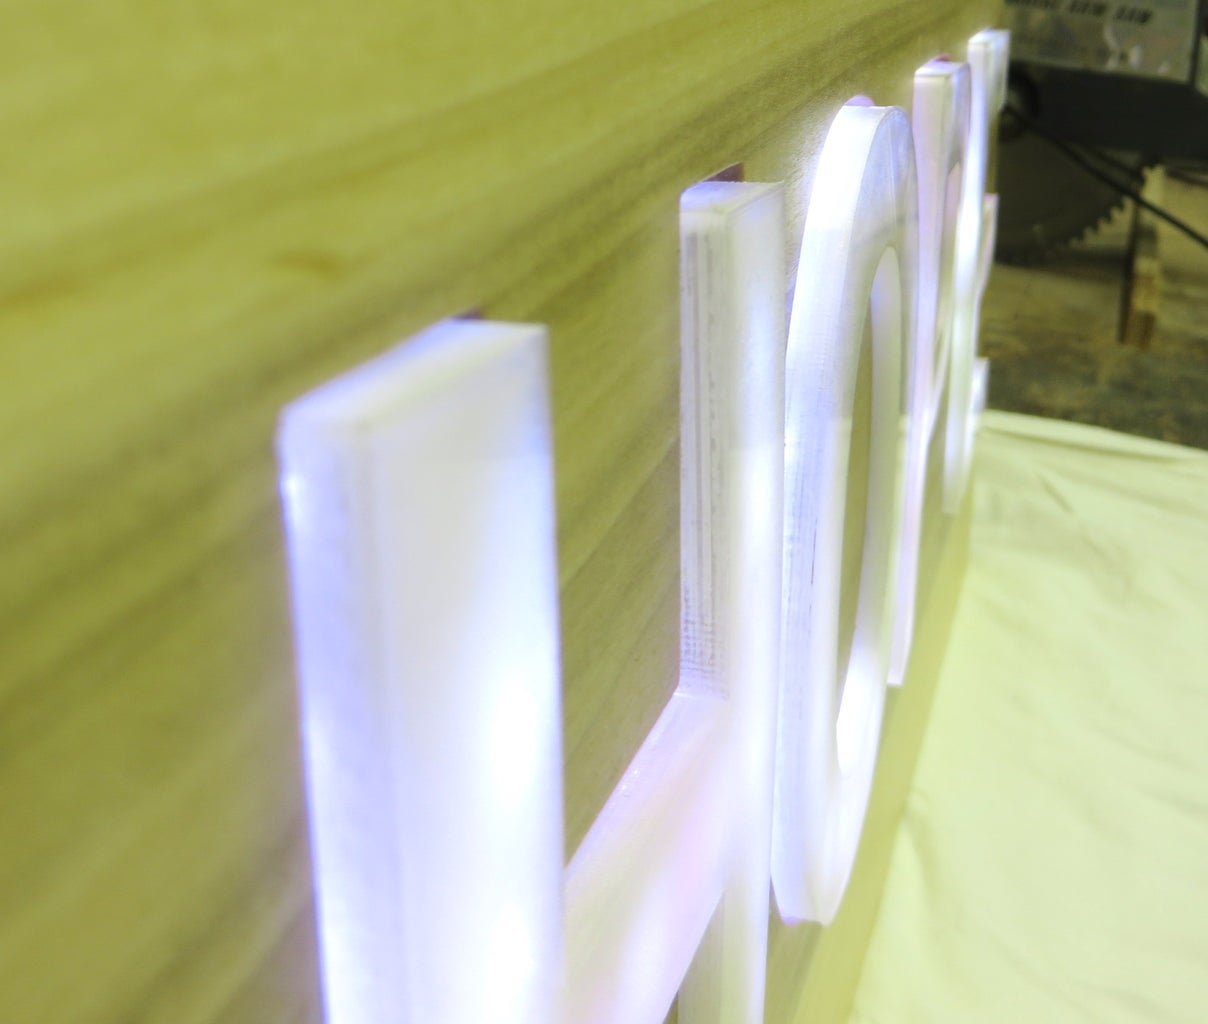 Sign 3: Internal Light Source With Protruding Lit Objects (HOPE)